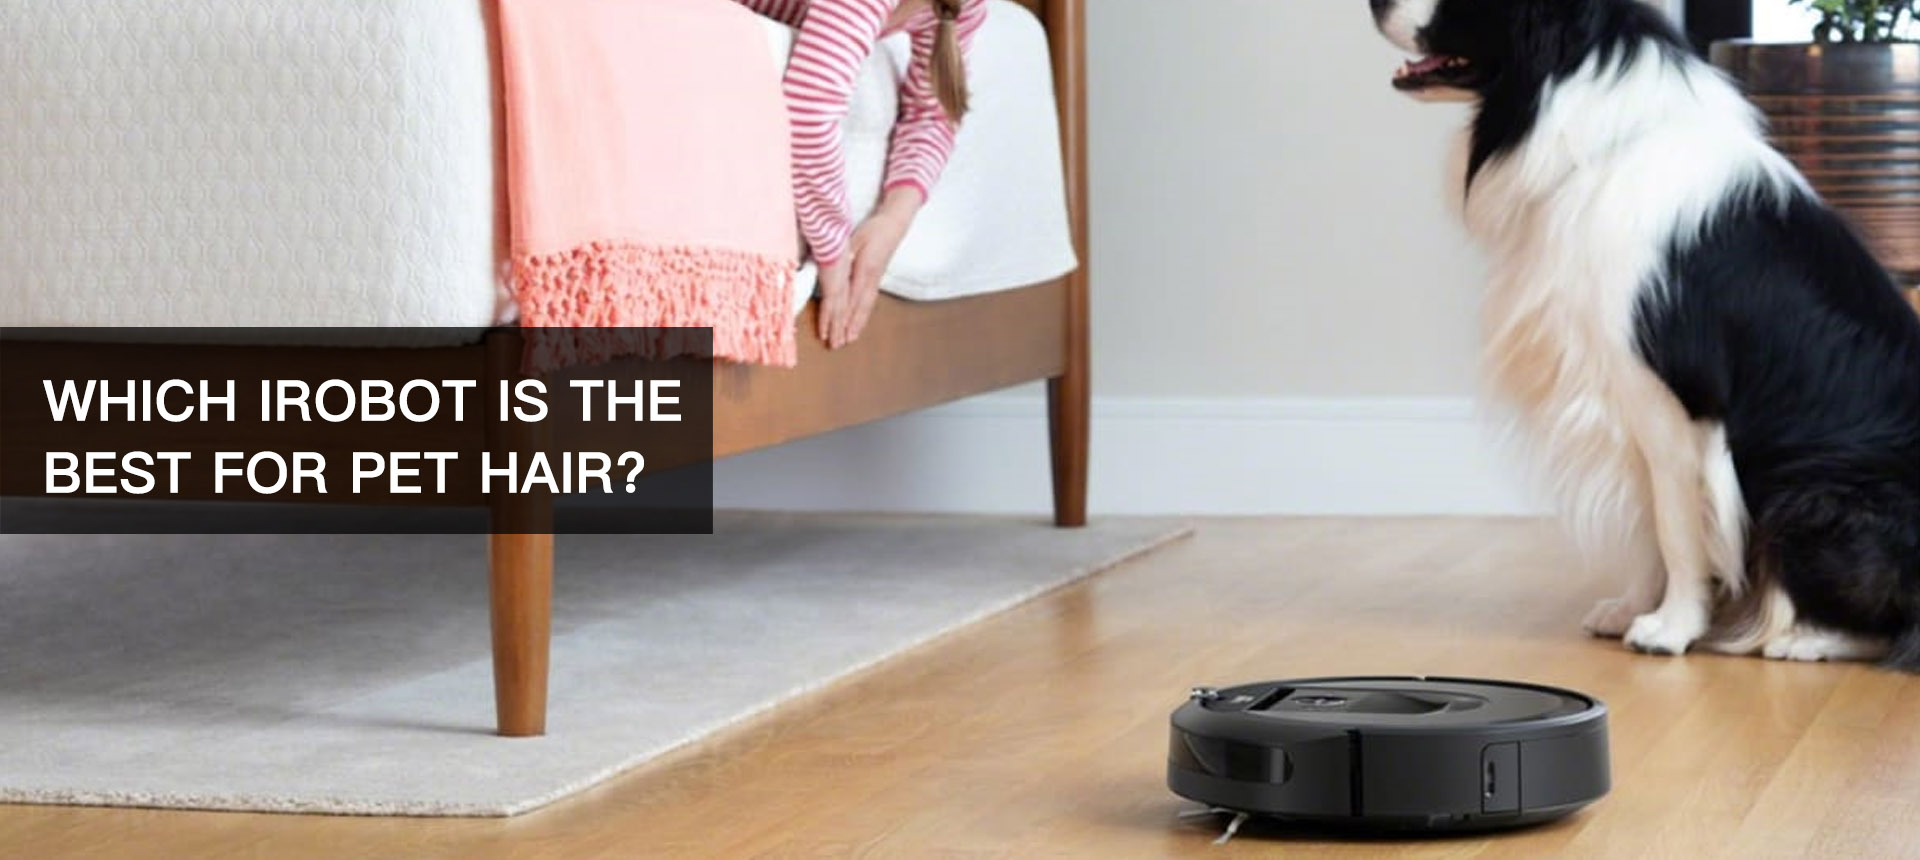 Which iRobot is the Best for Pet Hair